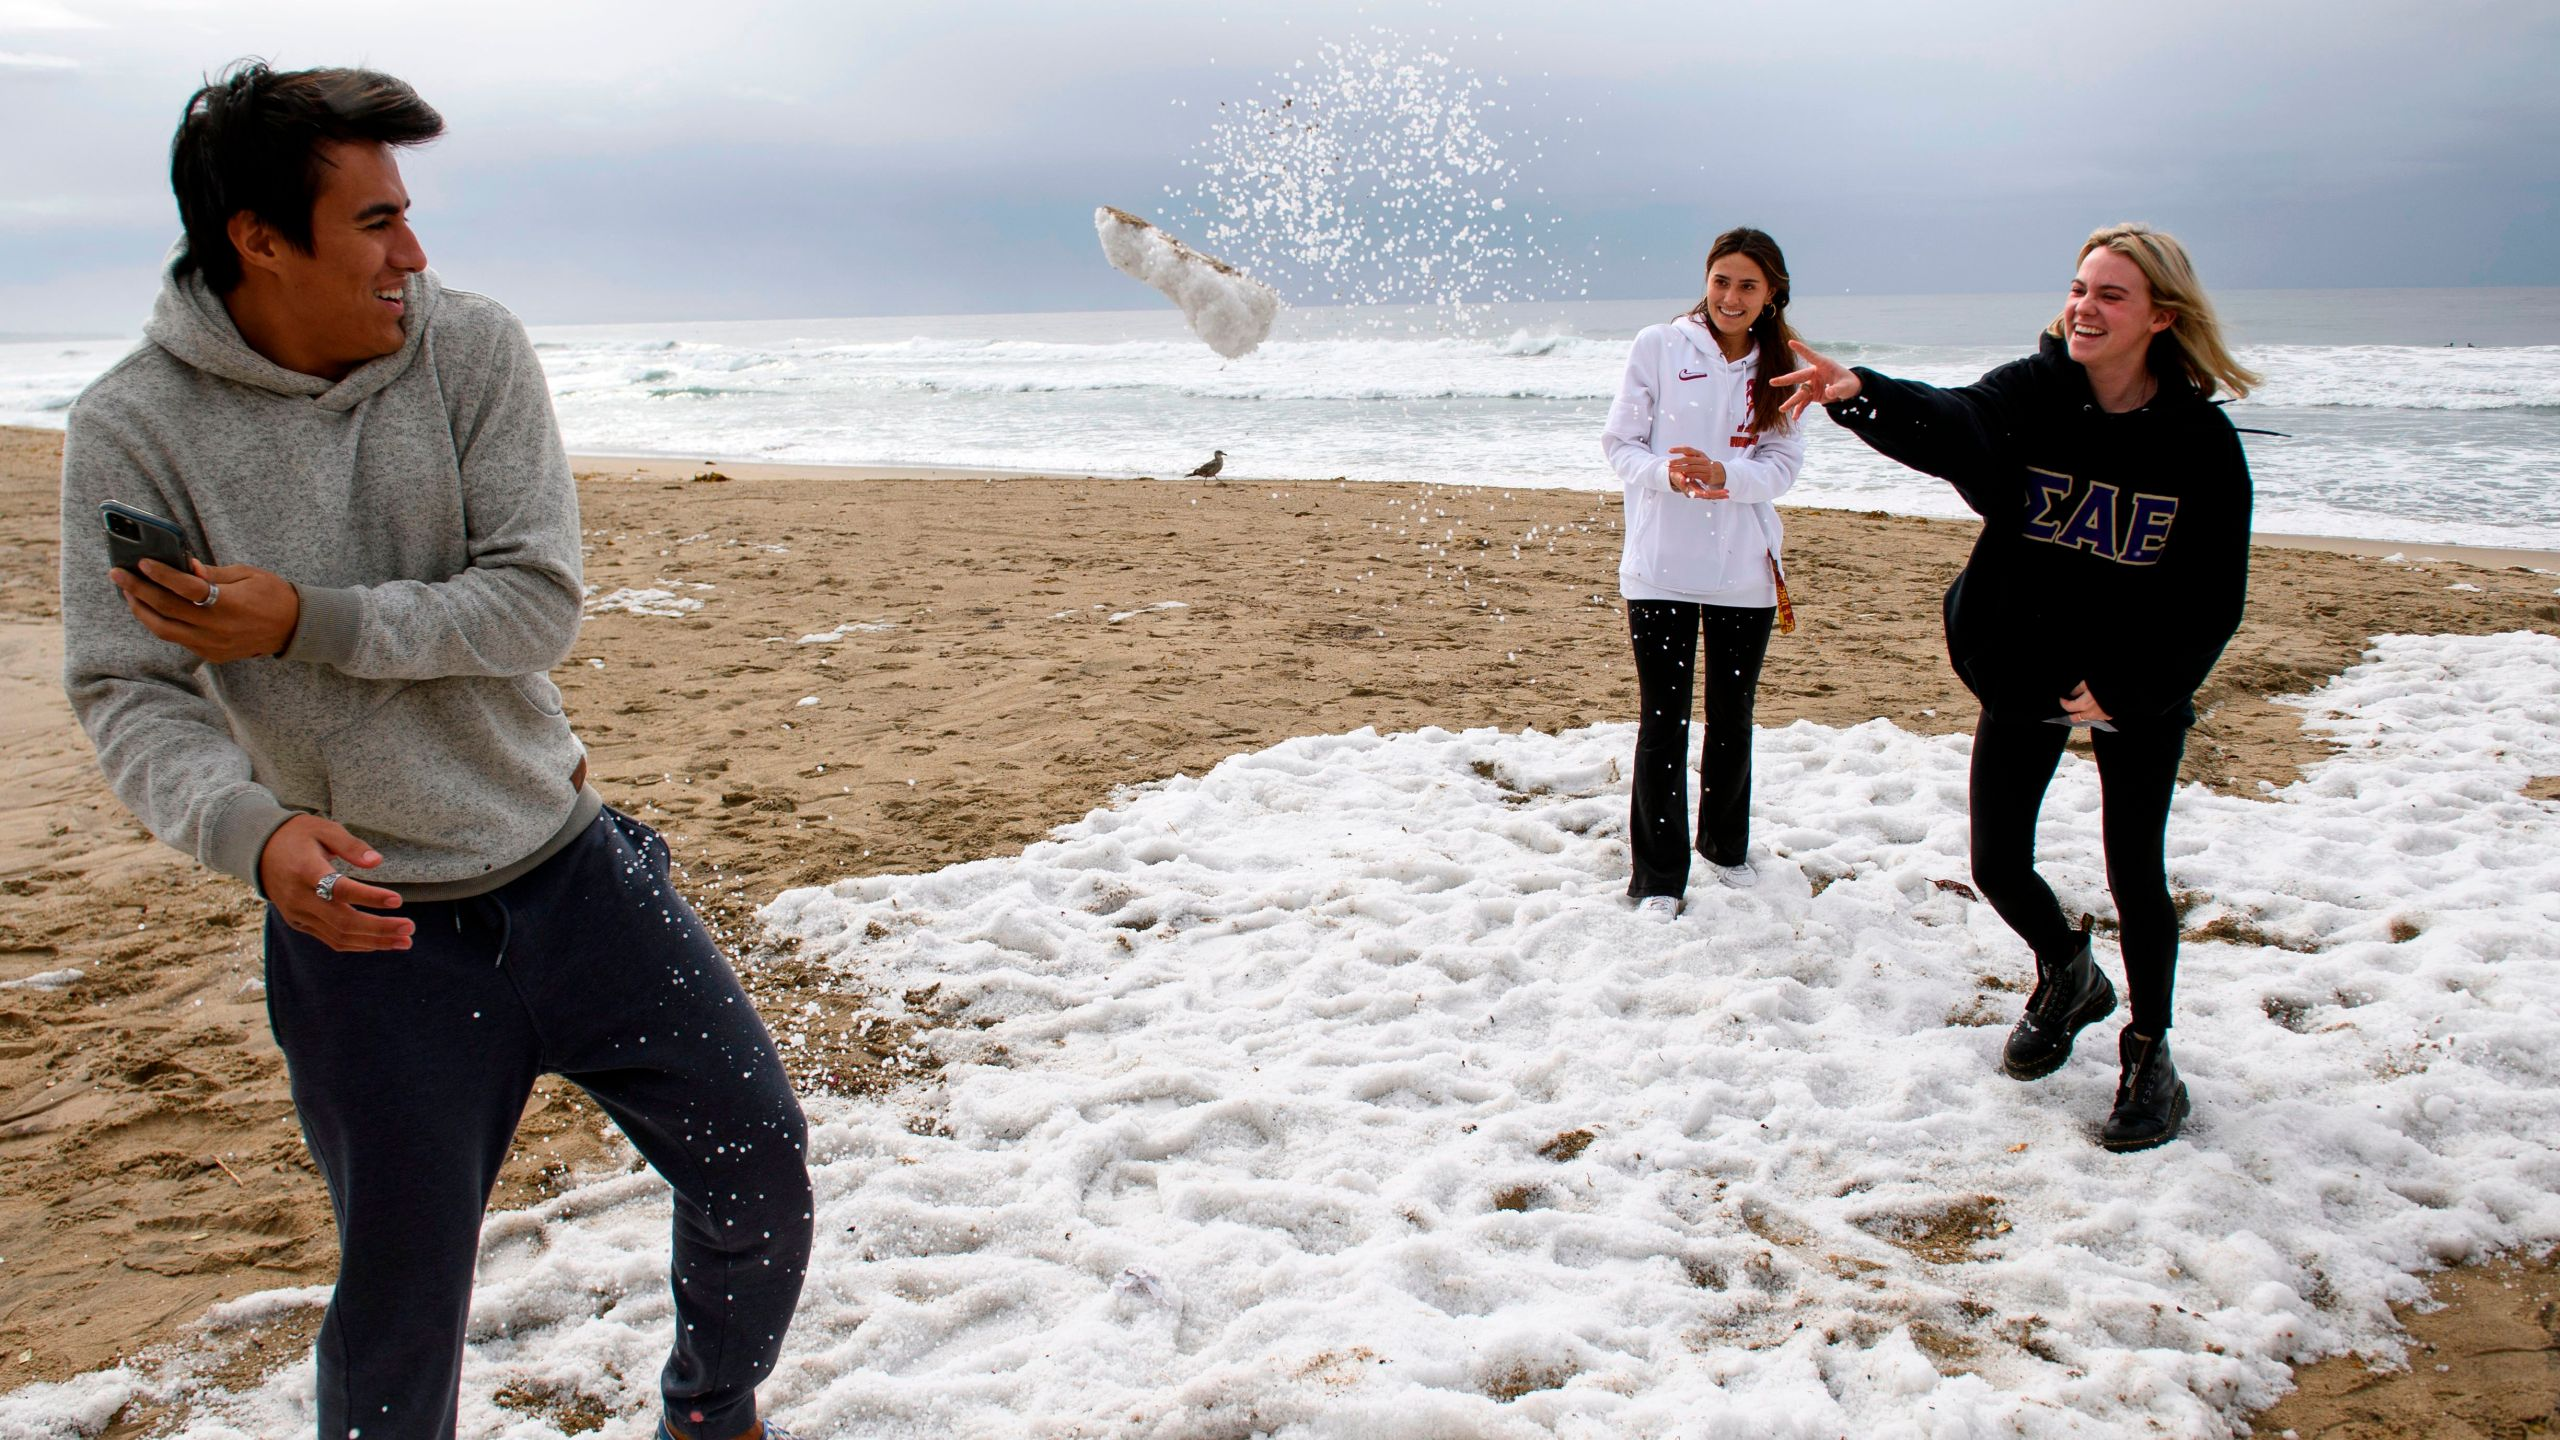 MacKenzie Hill, (R) throws a snowball at Eddie Donovan (L) with Destiny Donovan (C, rear) as they play with hail on the beach following winter storms that blanketed the region with rain, snow, and hail, on Jan. 29, 2021 in Manhattan Beach, Calif. (Patrick T. FALLON / AFP via Getty Images)